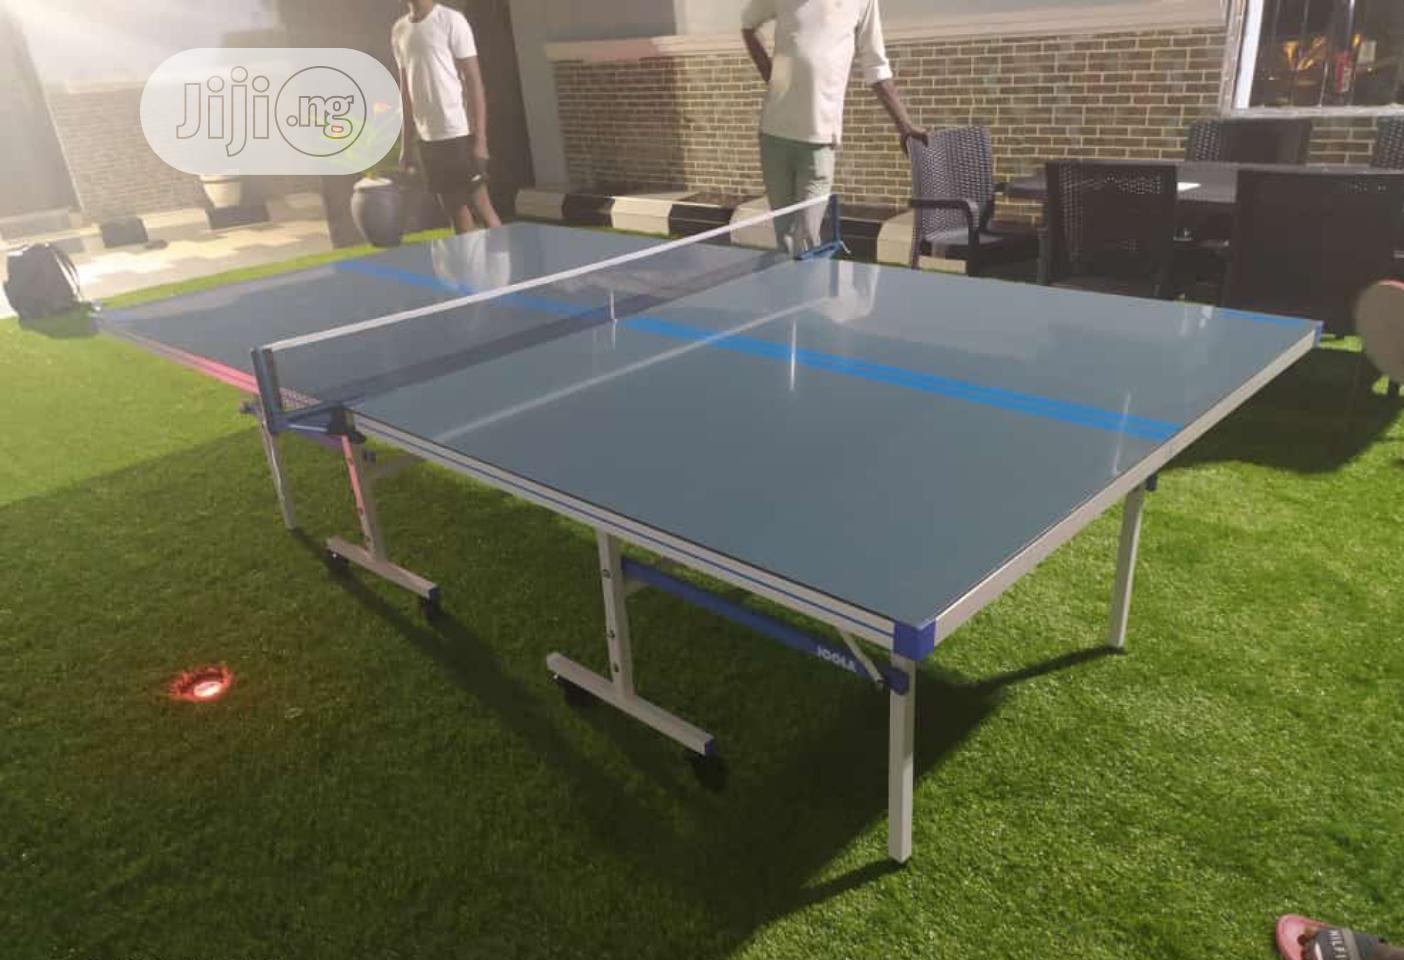 Standard Joola Outdoor Table Tennis Board With Accessories